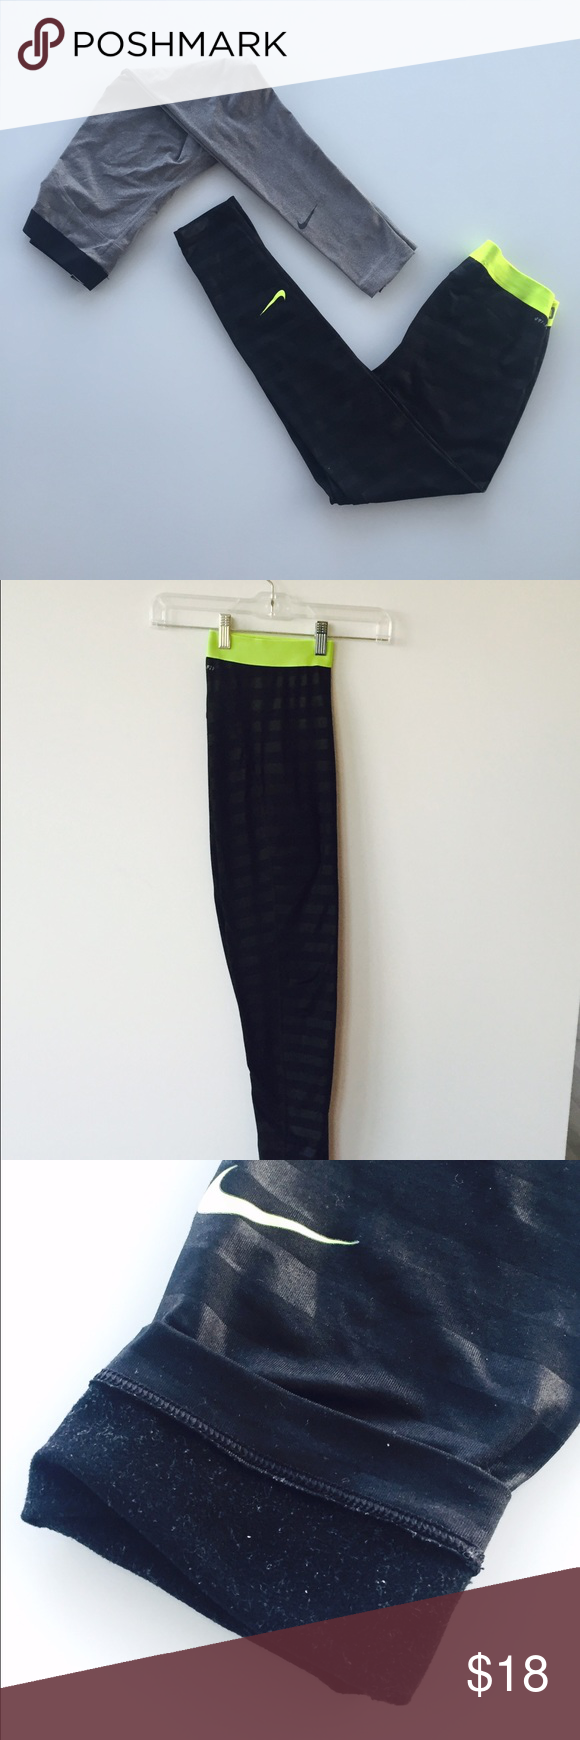 Nike black dri-fit polyester lined leggings Pre-loved! A little bit of faded wording and lint shown in last two pictures, will make sure it's in the best condition when it ships! Body: 12% spandex, 88% polyester. Lining: 100% polyester Nike Pants Leggings